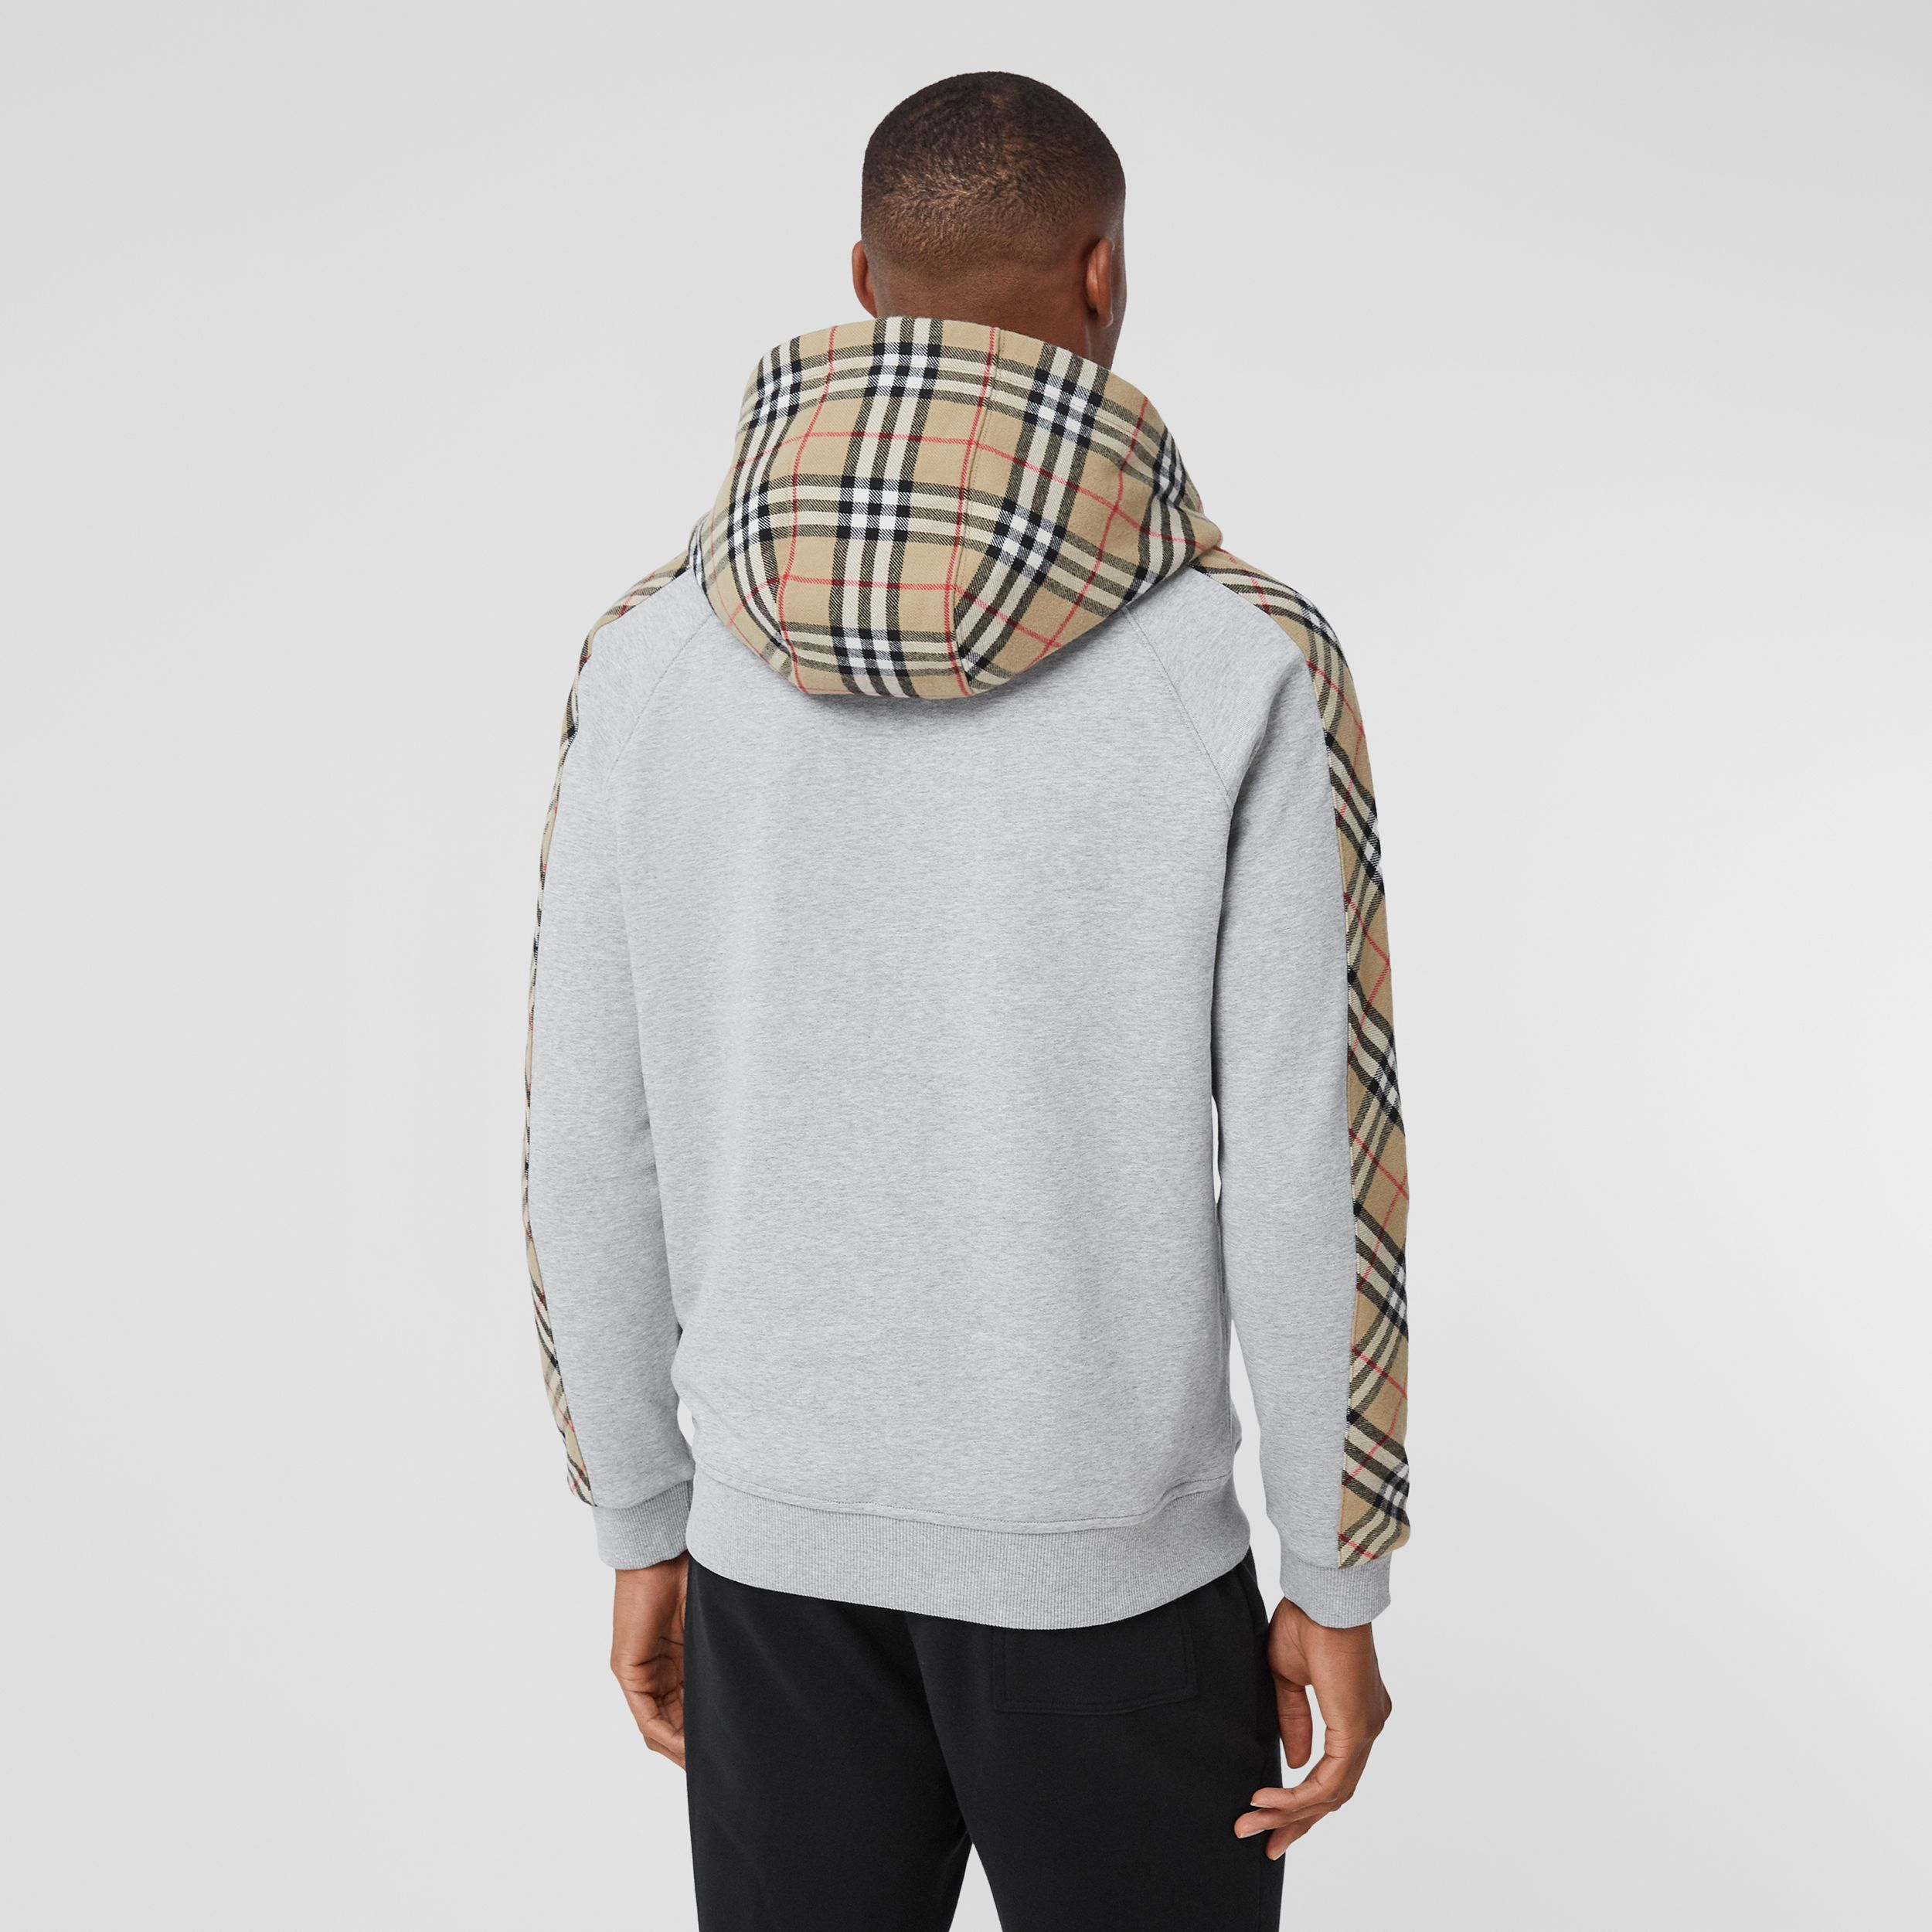 Vintage Check Panel Cotton Hooded Top in Pale Grey Melange - Men | Burberry - 3